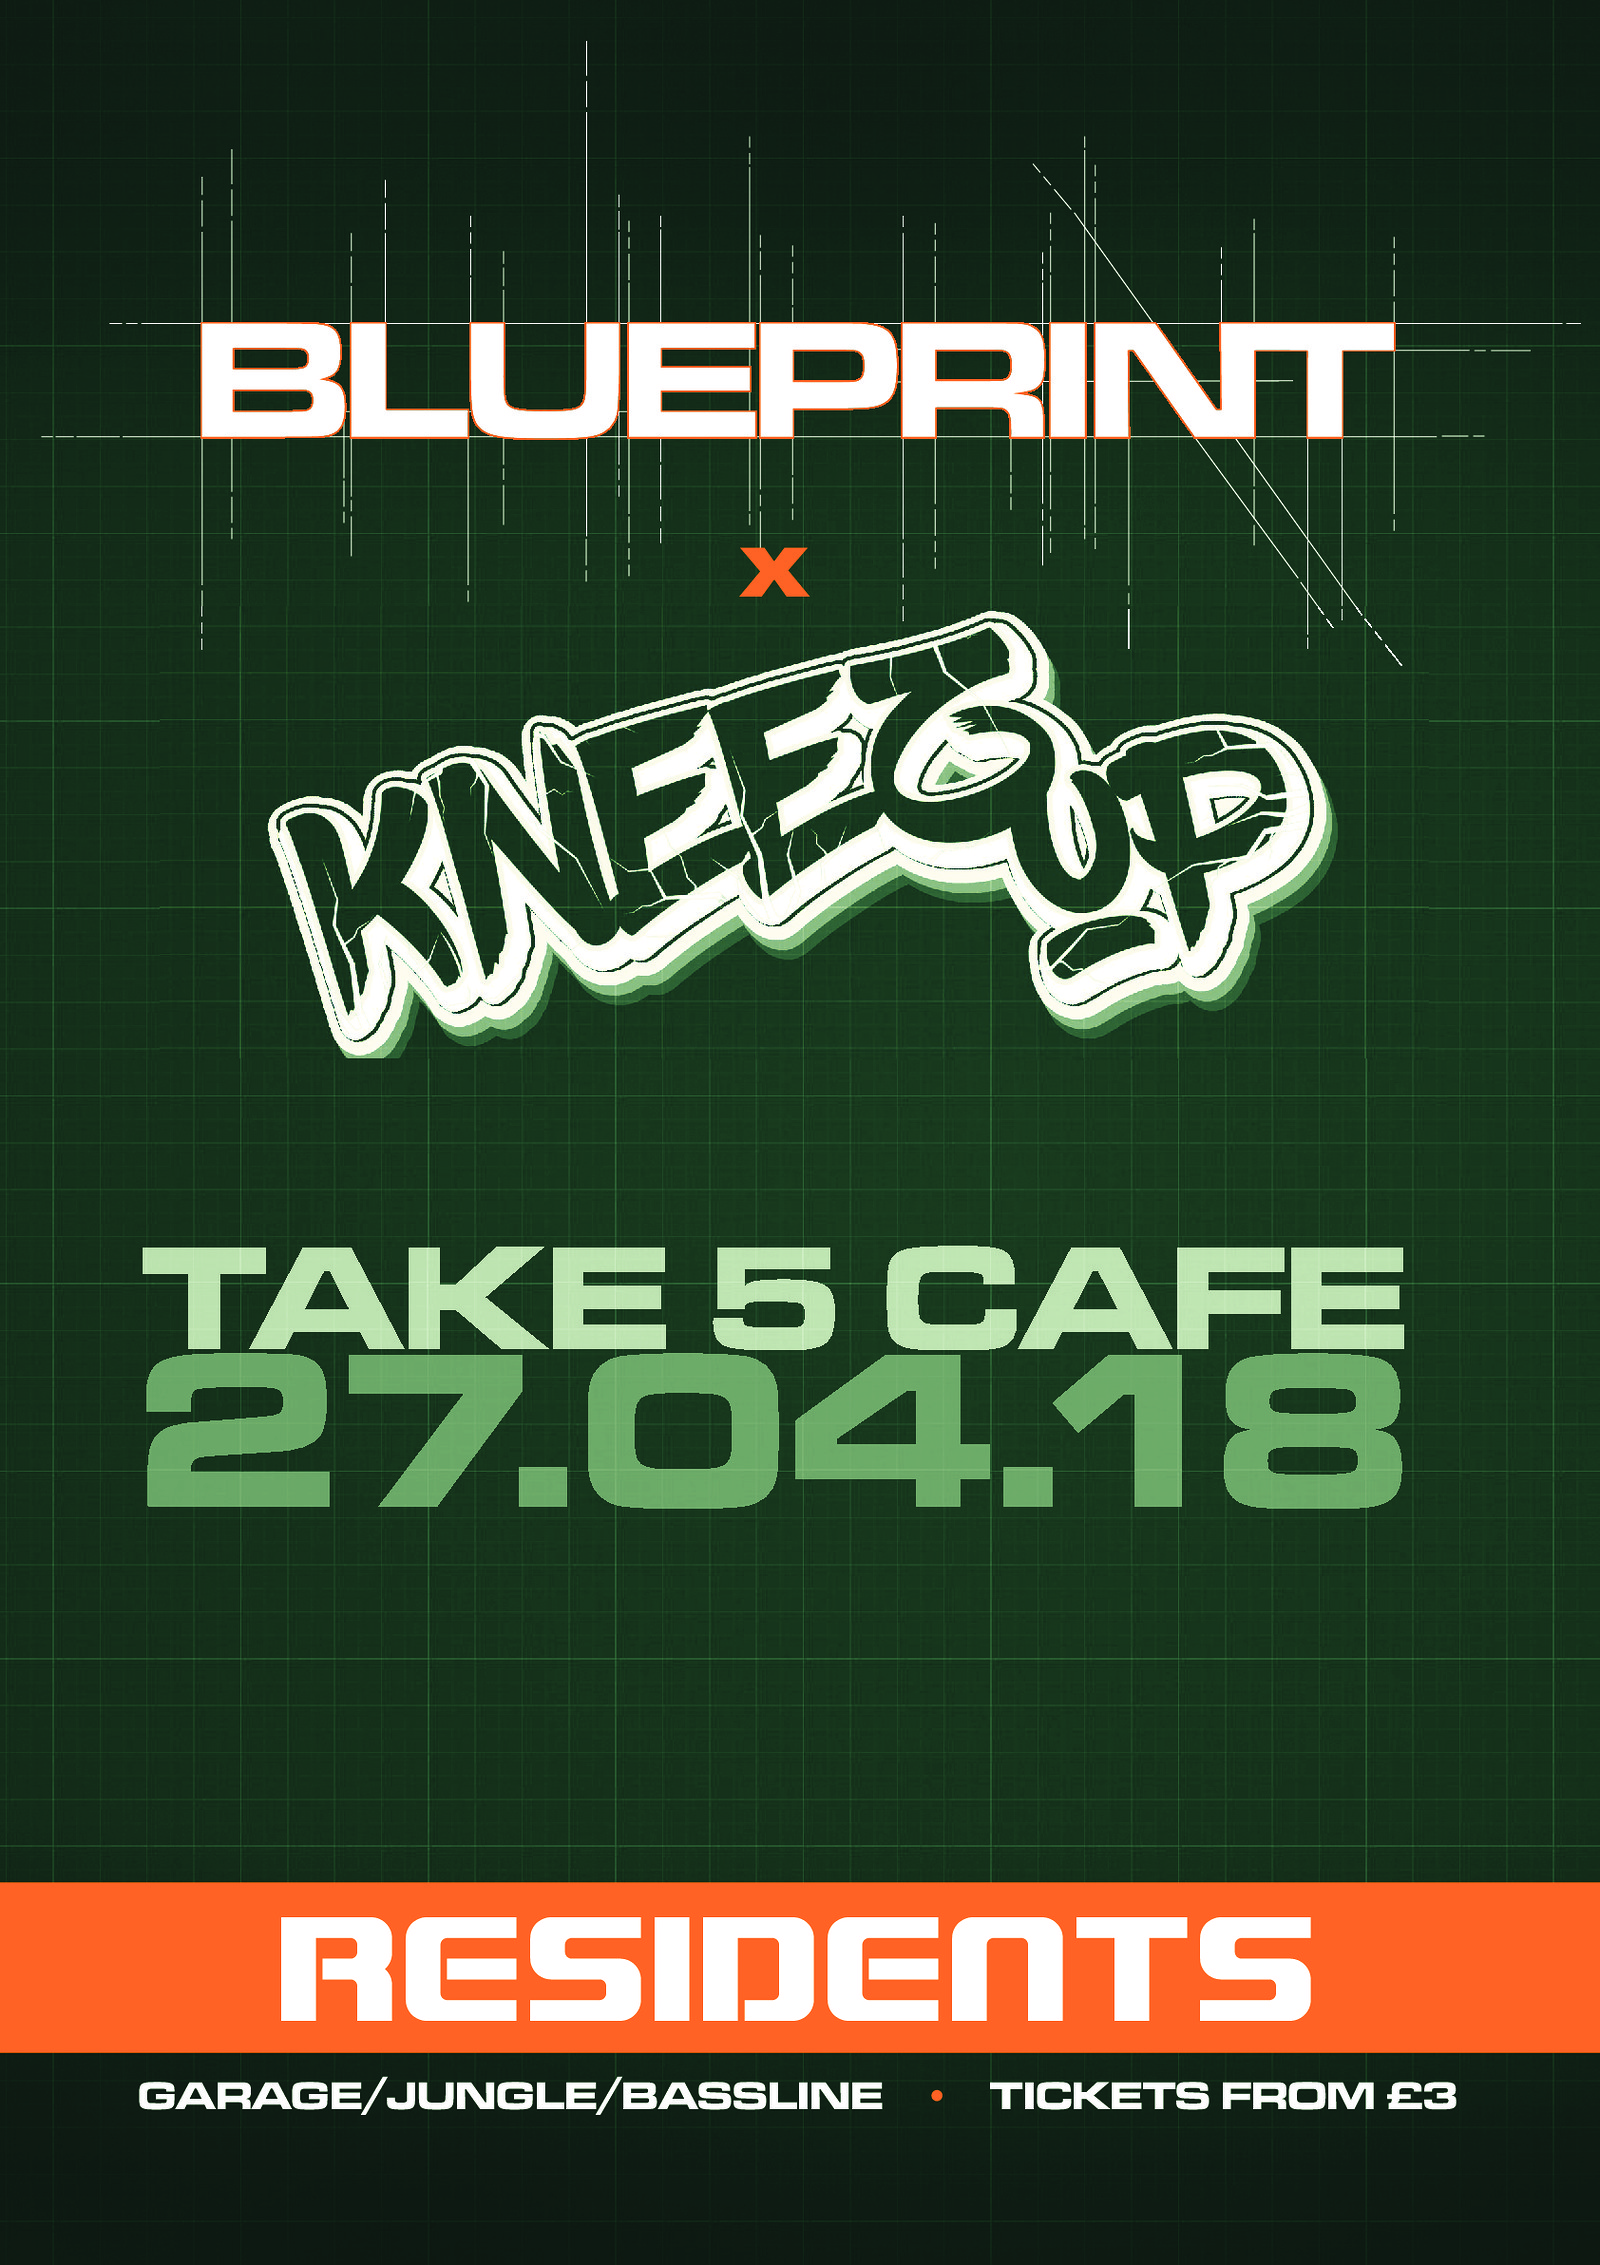 Blueprint x kneez up tickets take five cafe buy from headfirst blueprint x kneez up tickets take five cafe buy from headfirst bristol malvernweather